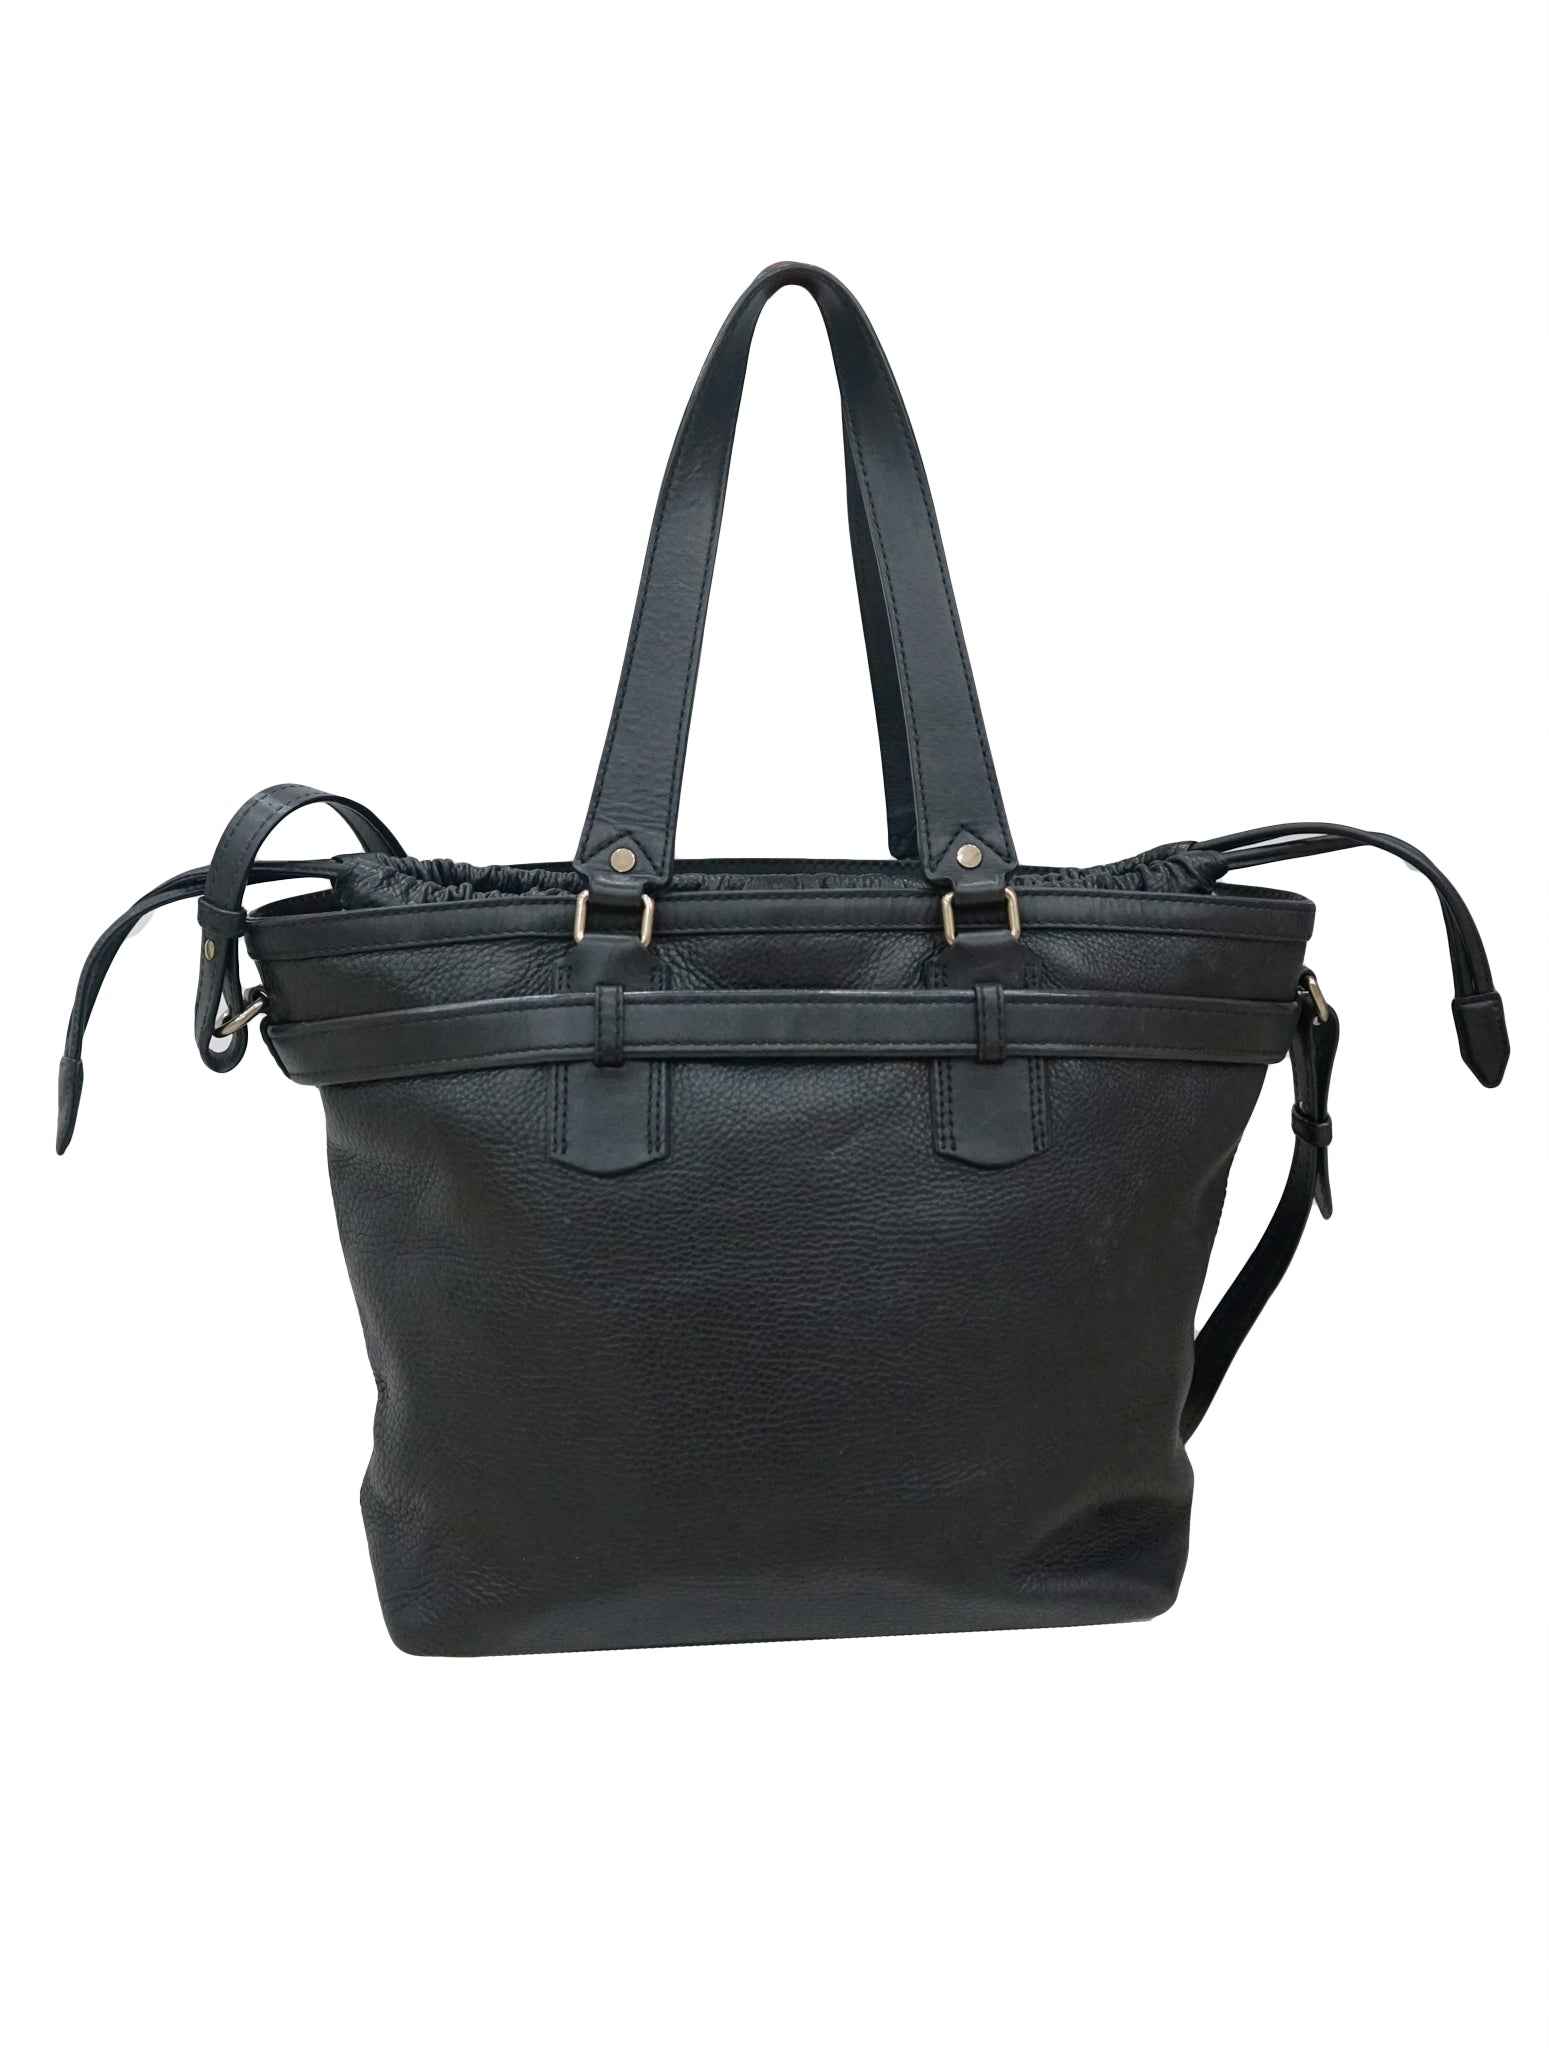 BLACK PEBBLED LEATHER DRAWSTRING TOTE